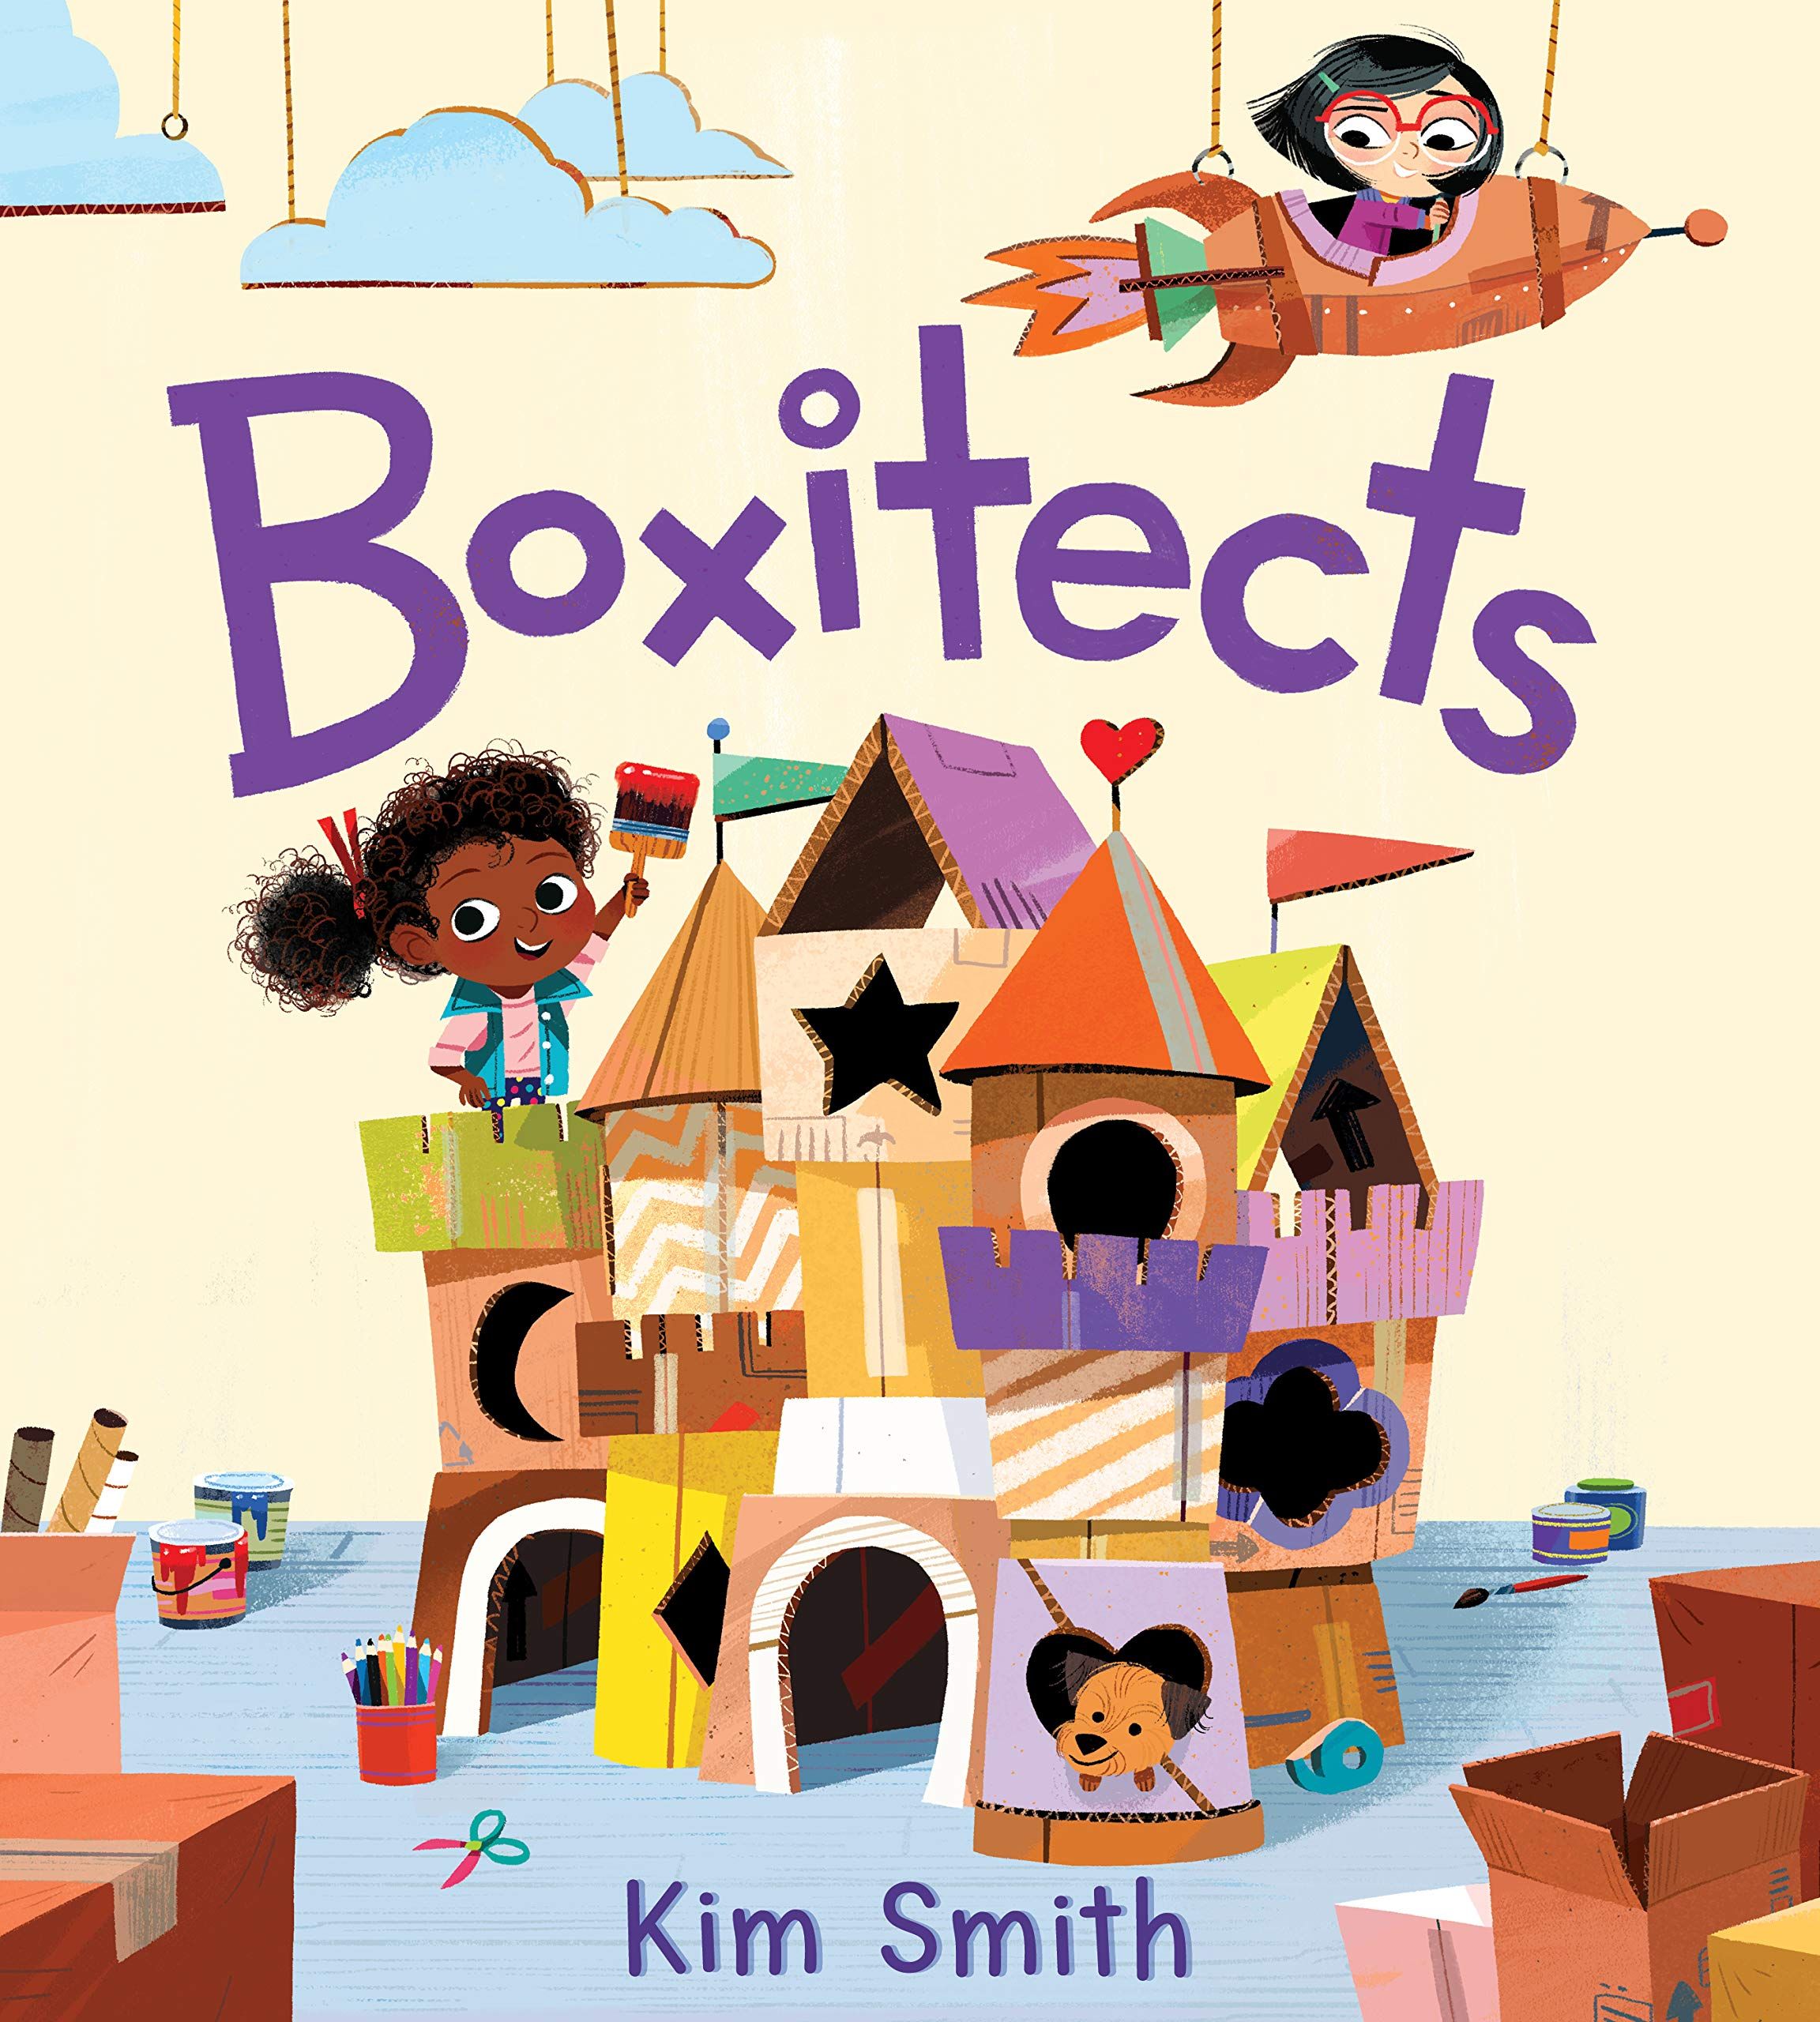 Boxitects: Smith, Kim: 9781328477200: Amazon.com: Books